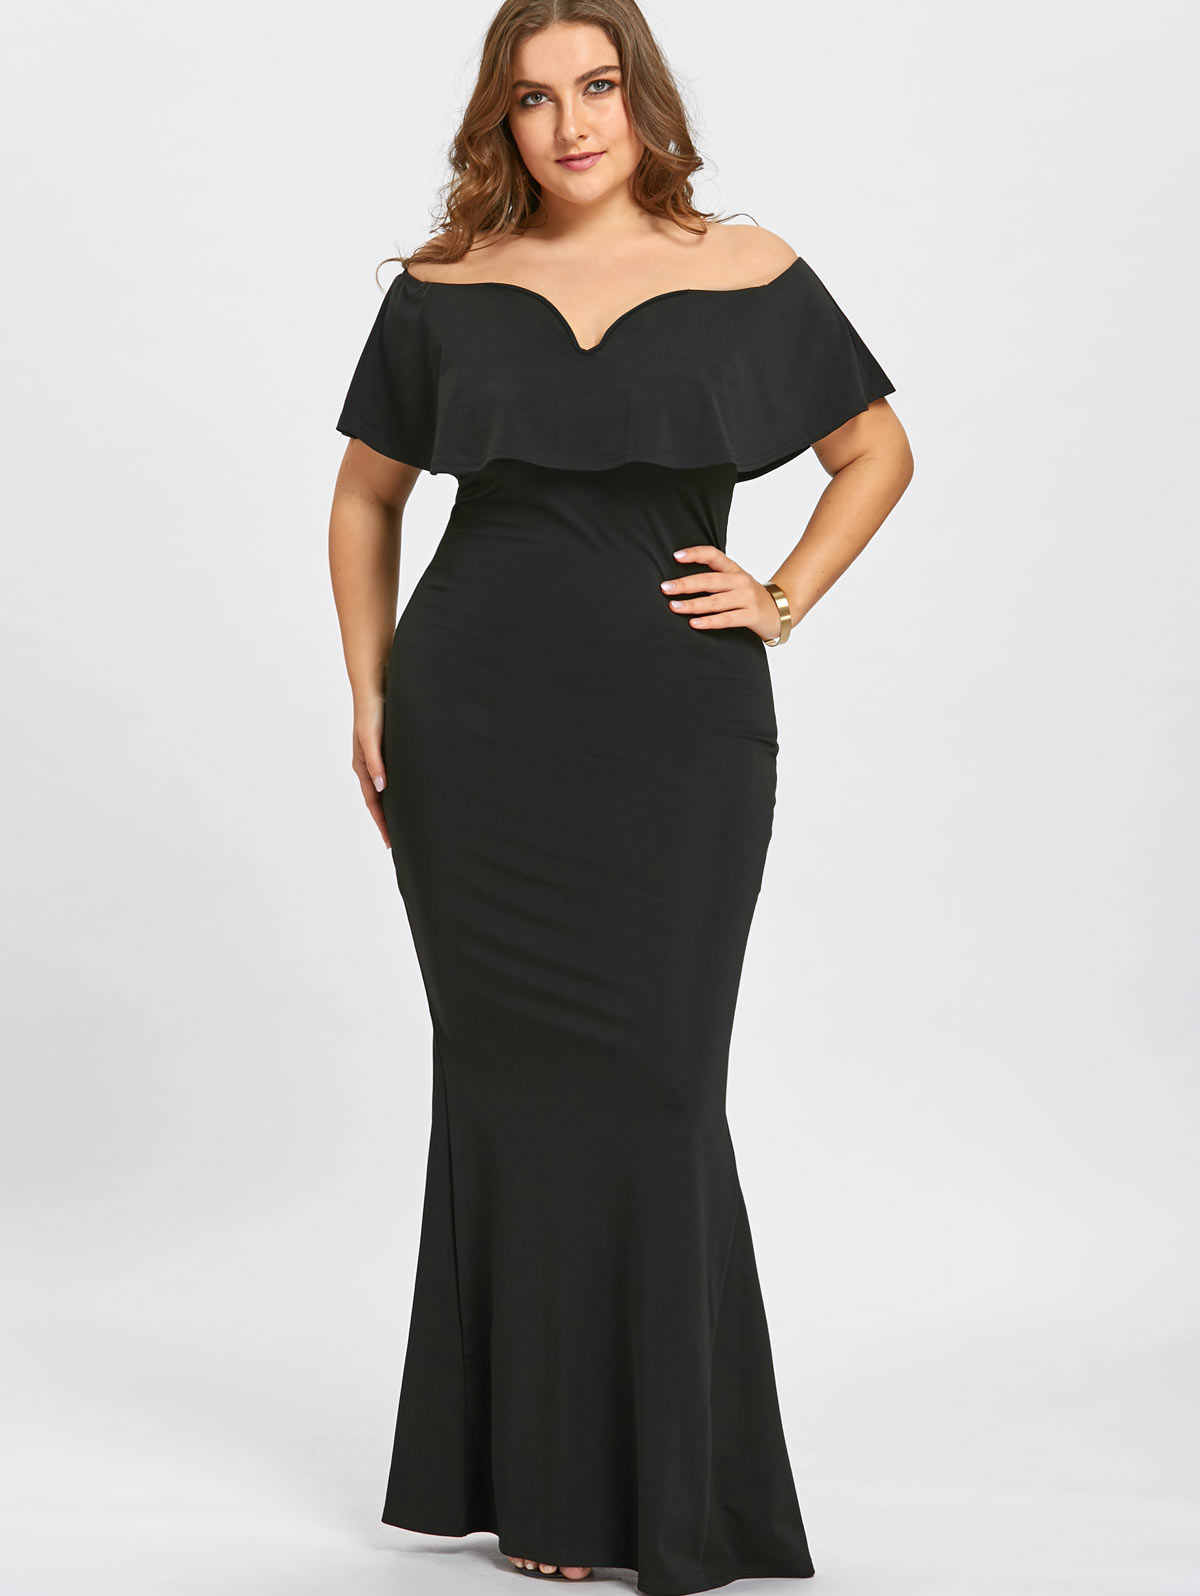 Gamiss Women Maxi Dresses Plus Size 5XL Ruffle Off The Shoulder Mermaid  Dress Short Sleeves Evening e94f865c105e